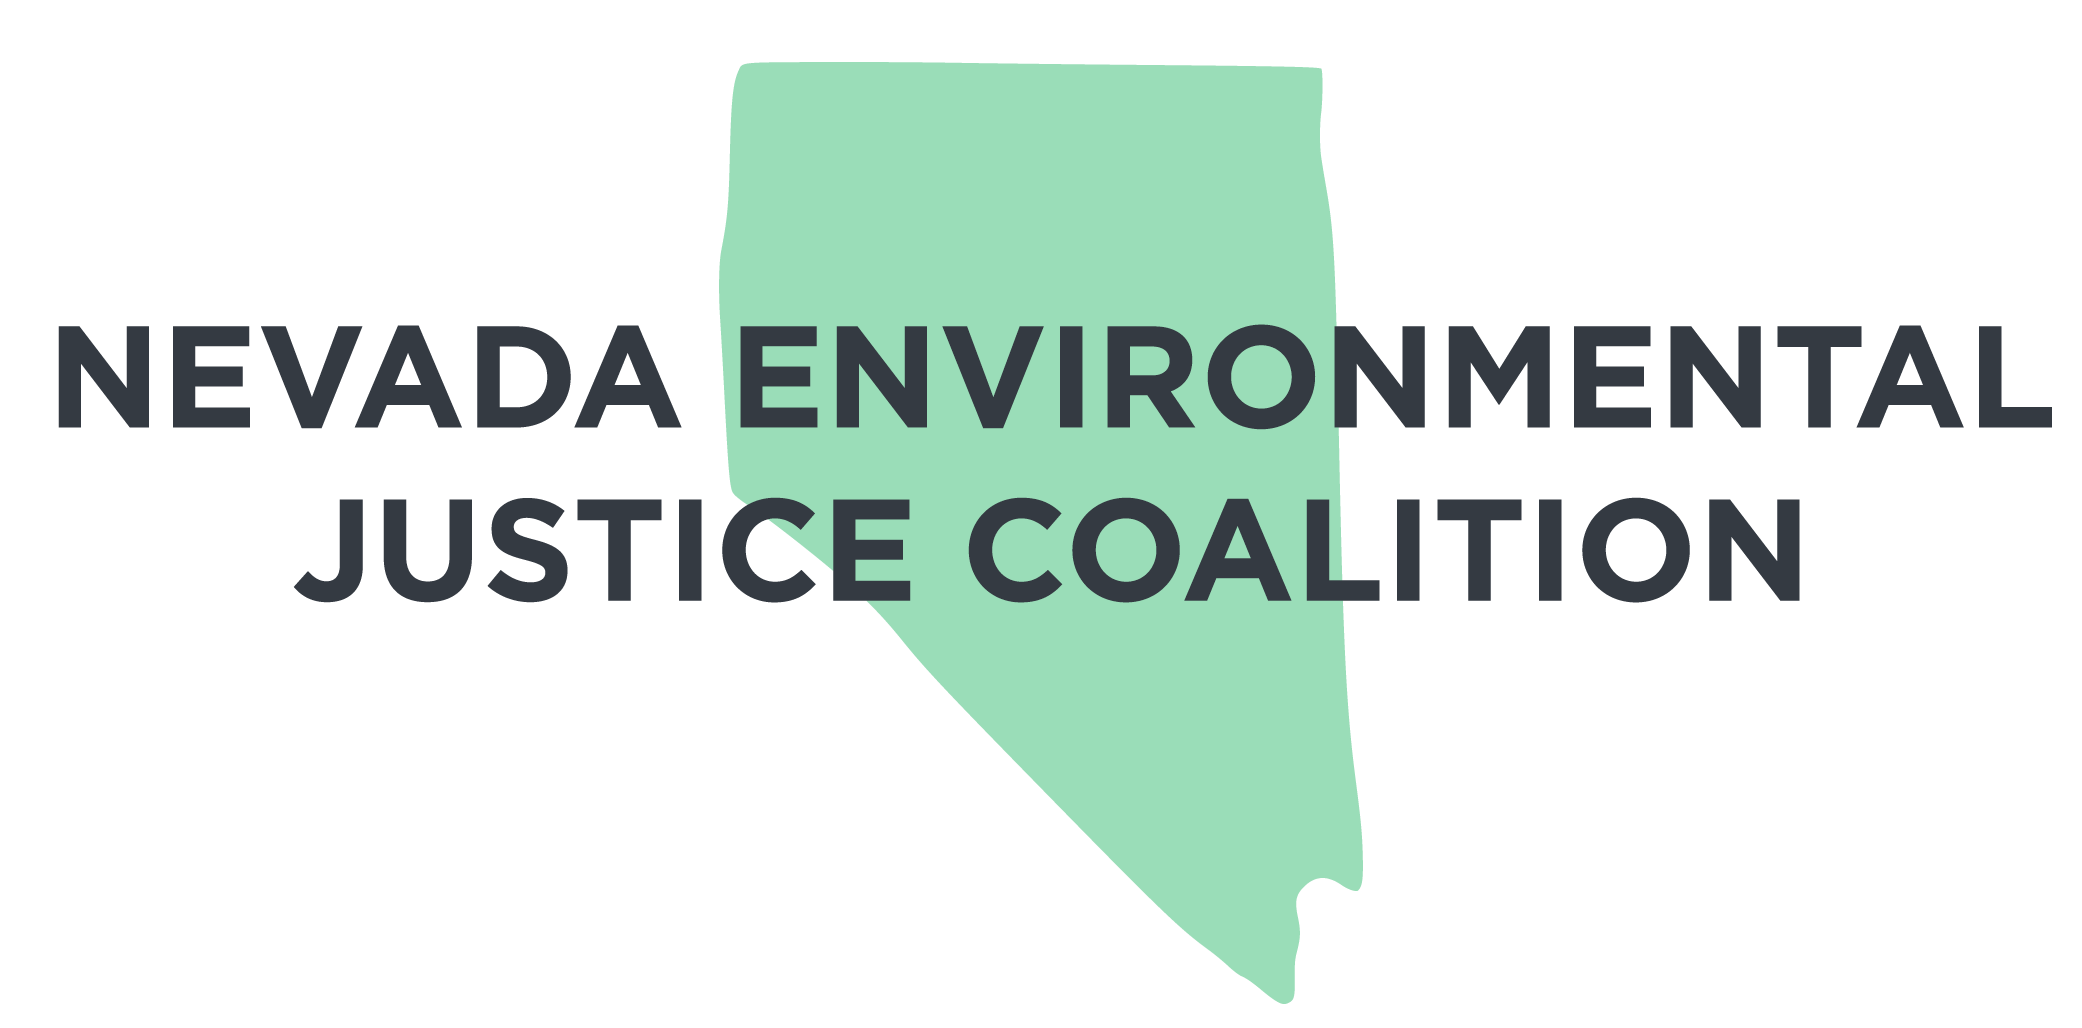 Nevada Environmental Justice Coalition -